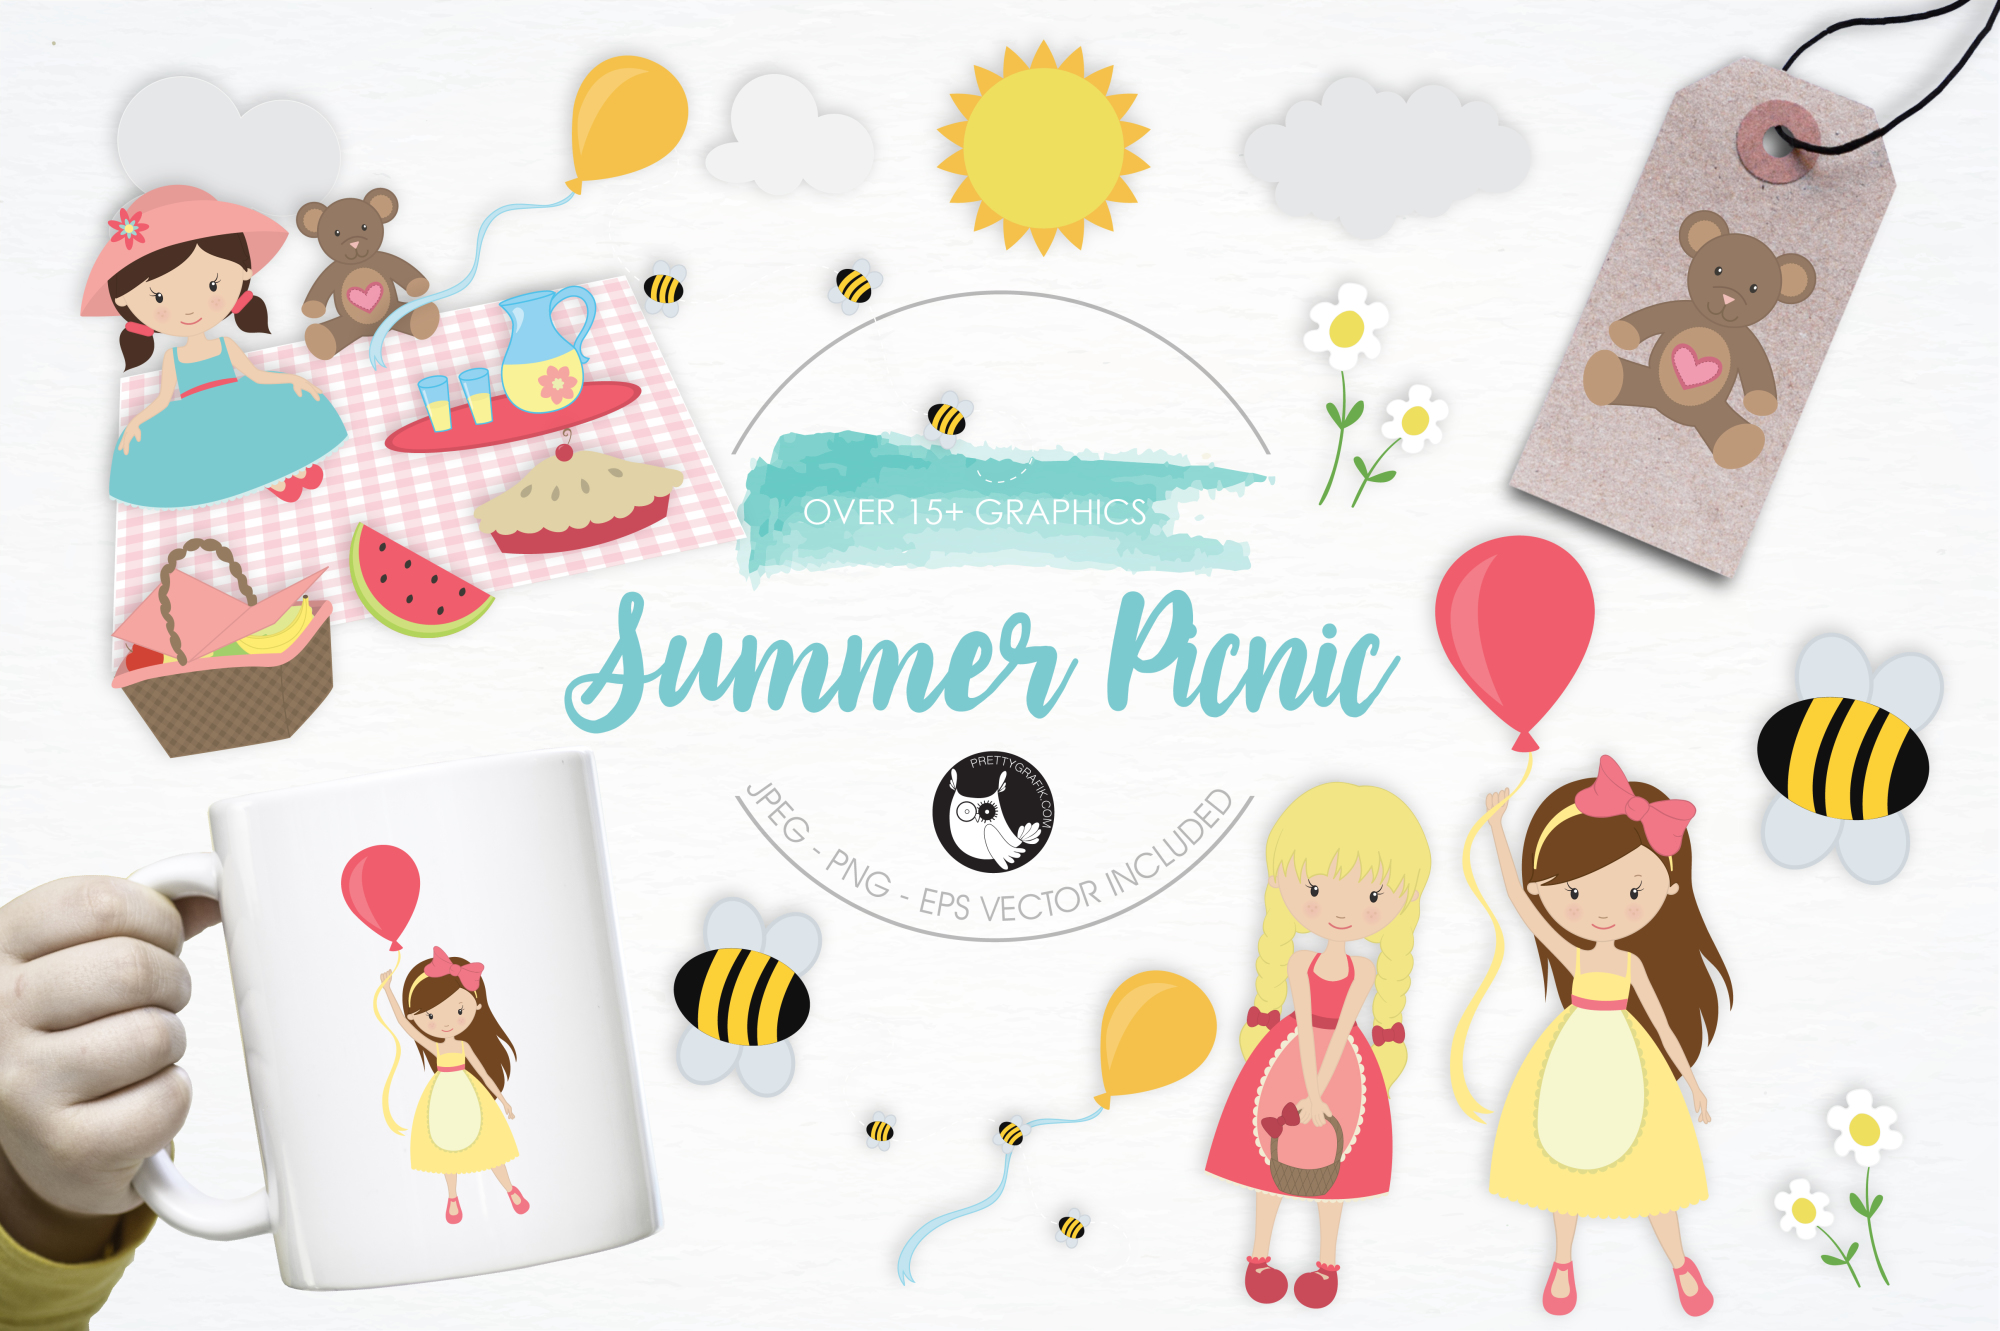 Summer Picnic graphics and illustrations example image 1